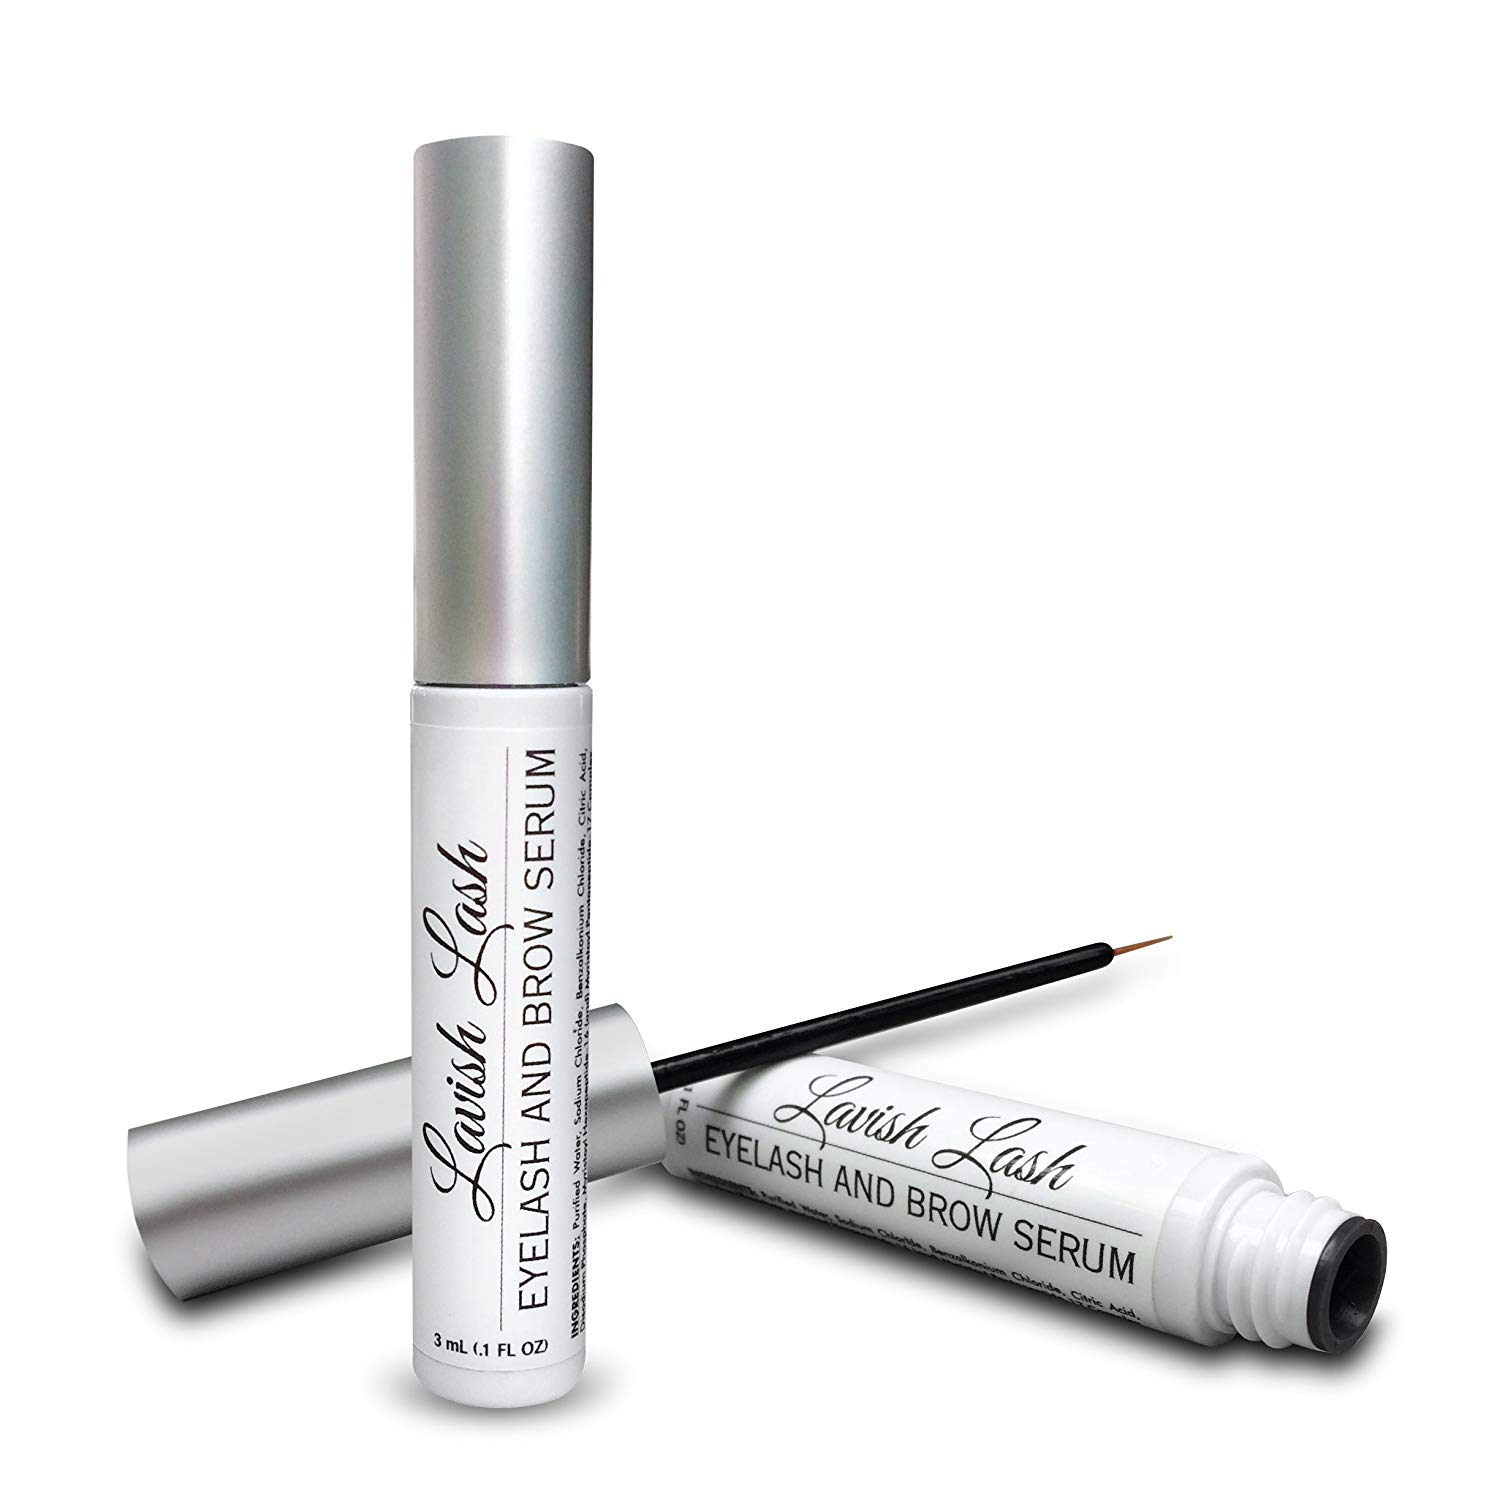 lavish lash serum in a white and silver bottle